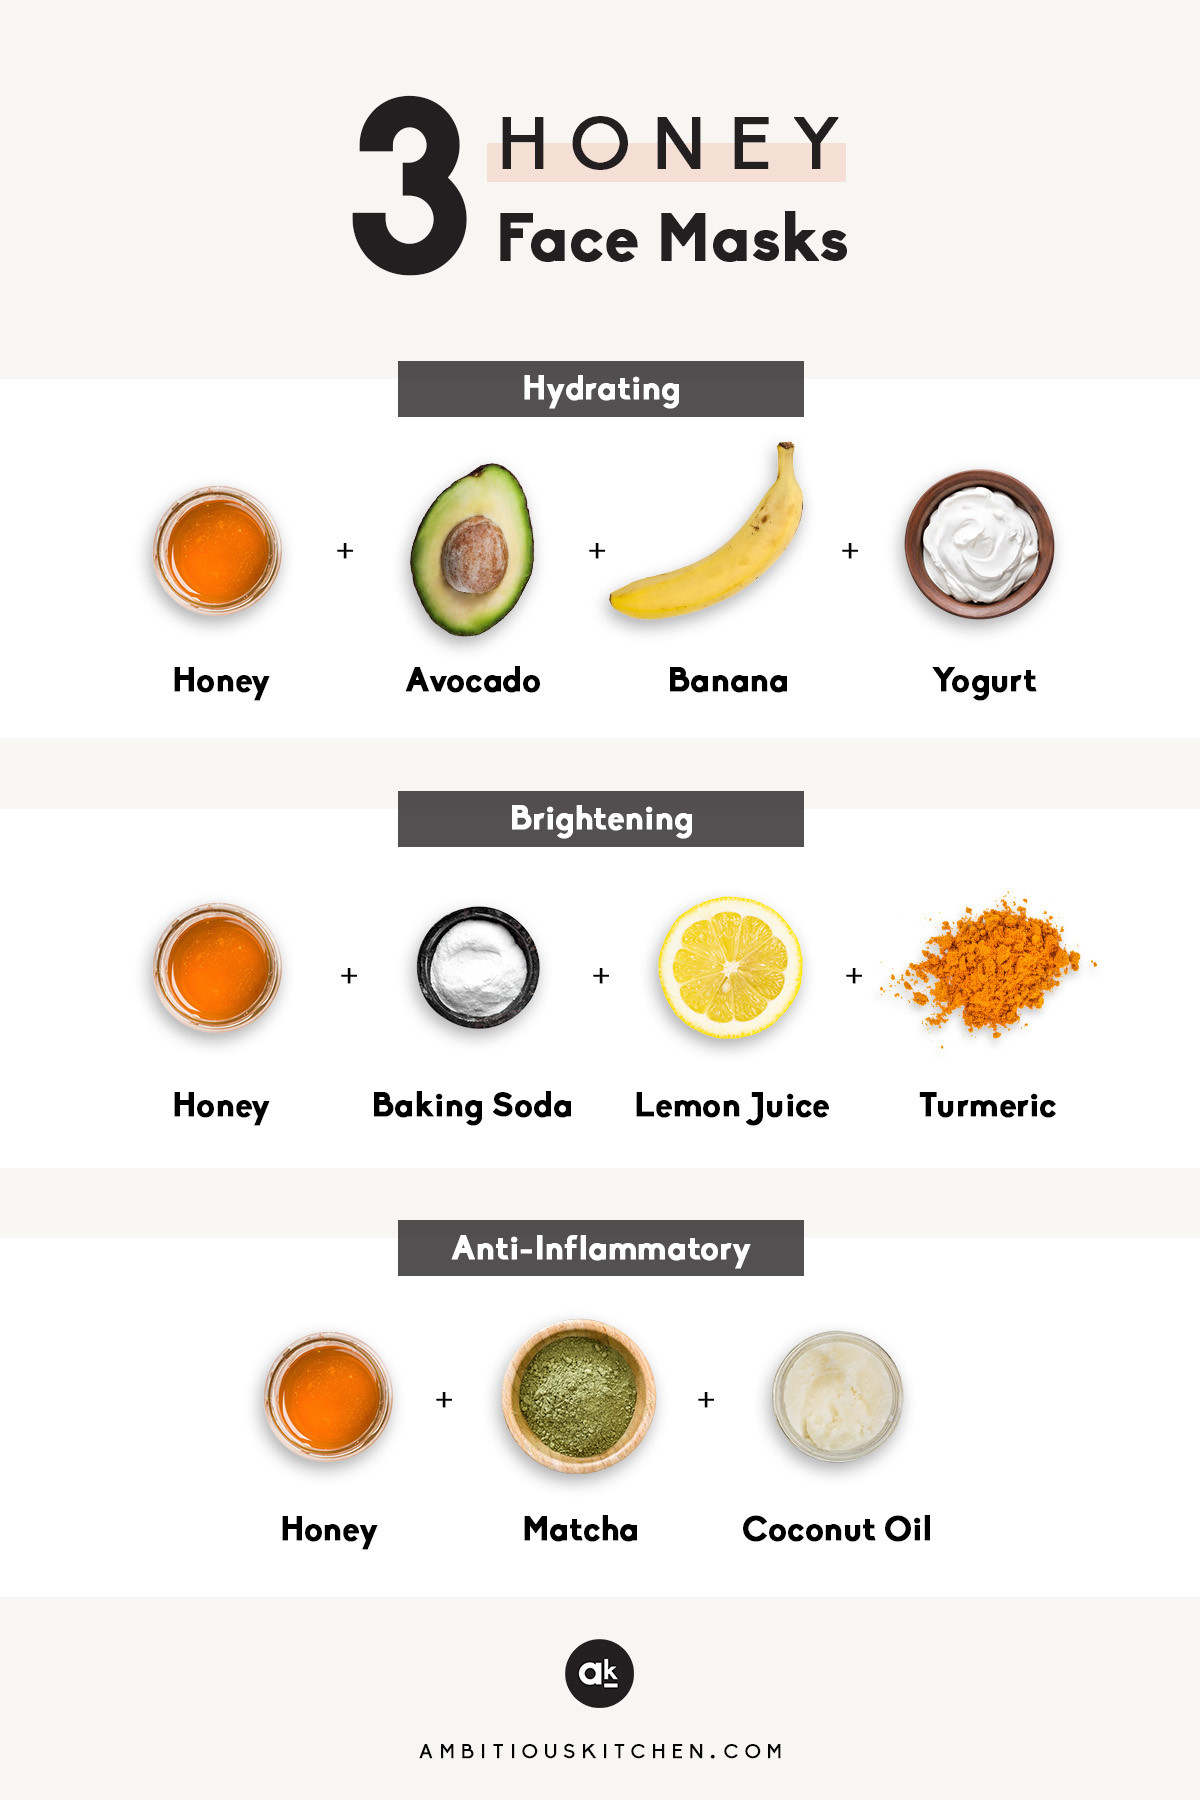 Best ideas about Facial Mask DIY . Save or Pin 3 DIY Honey Face Masks video Now.